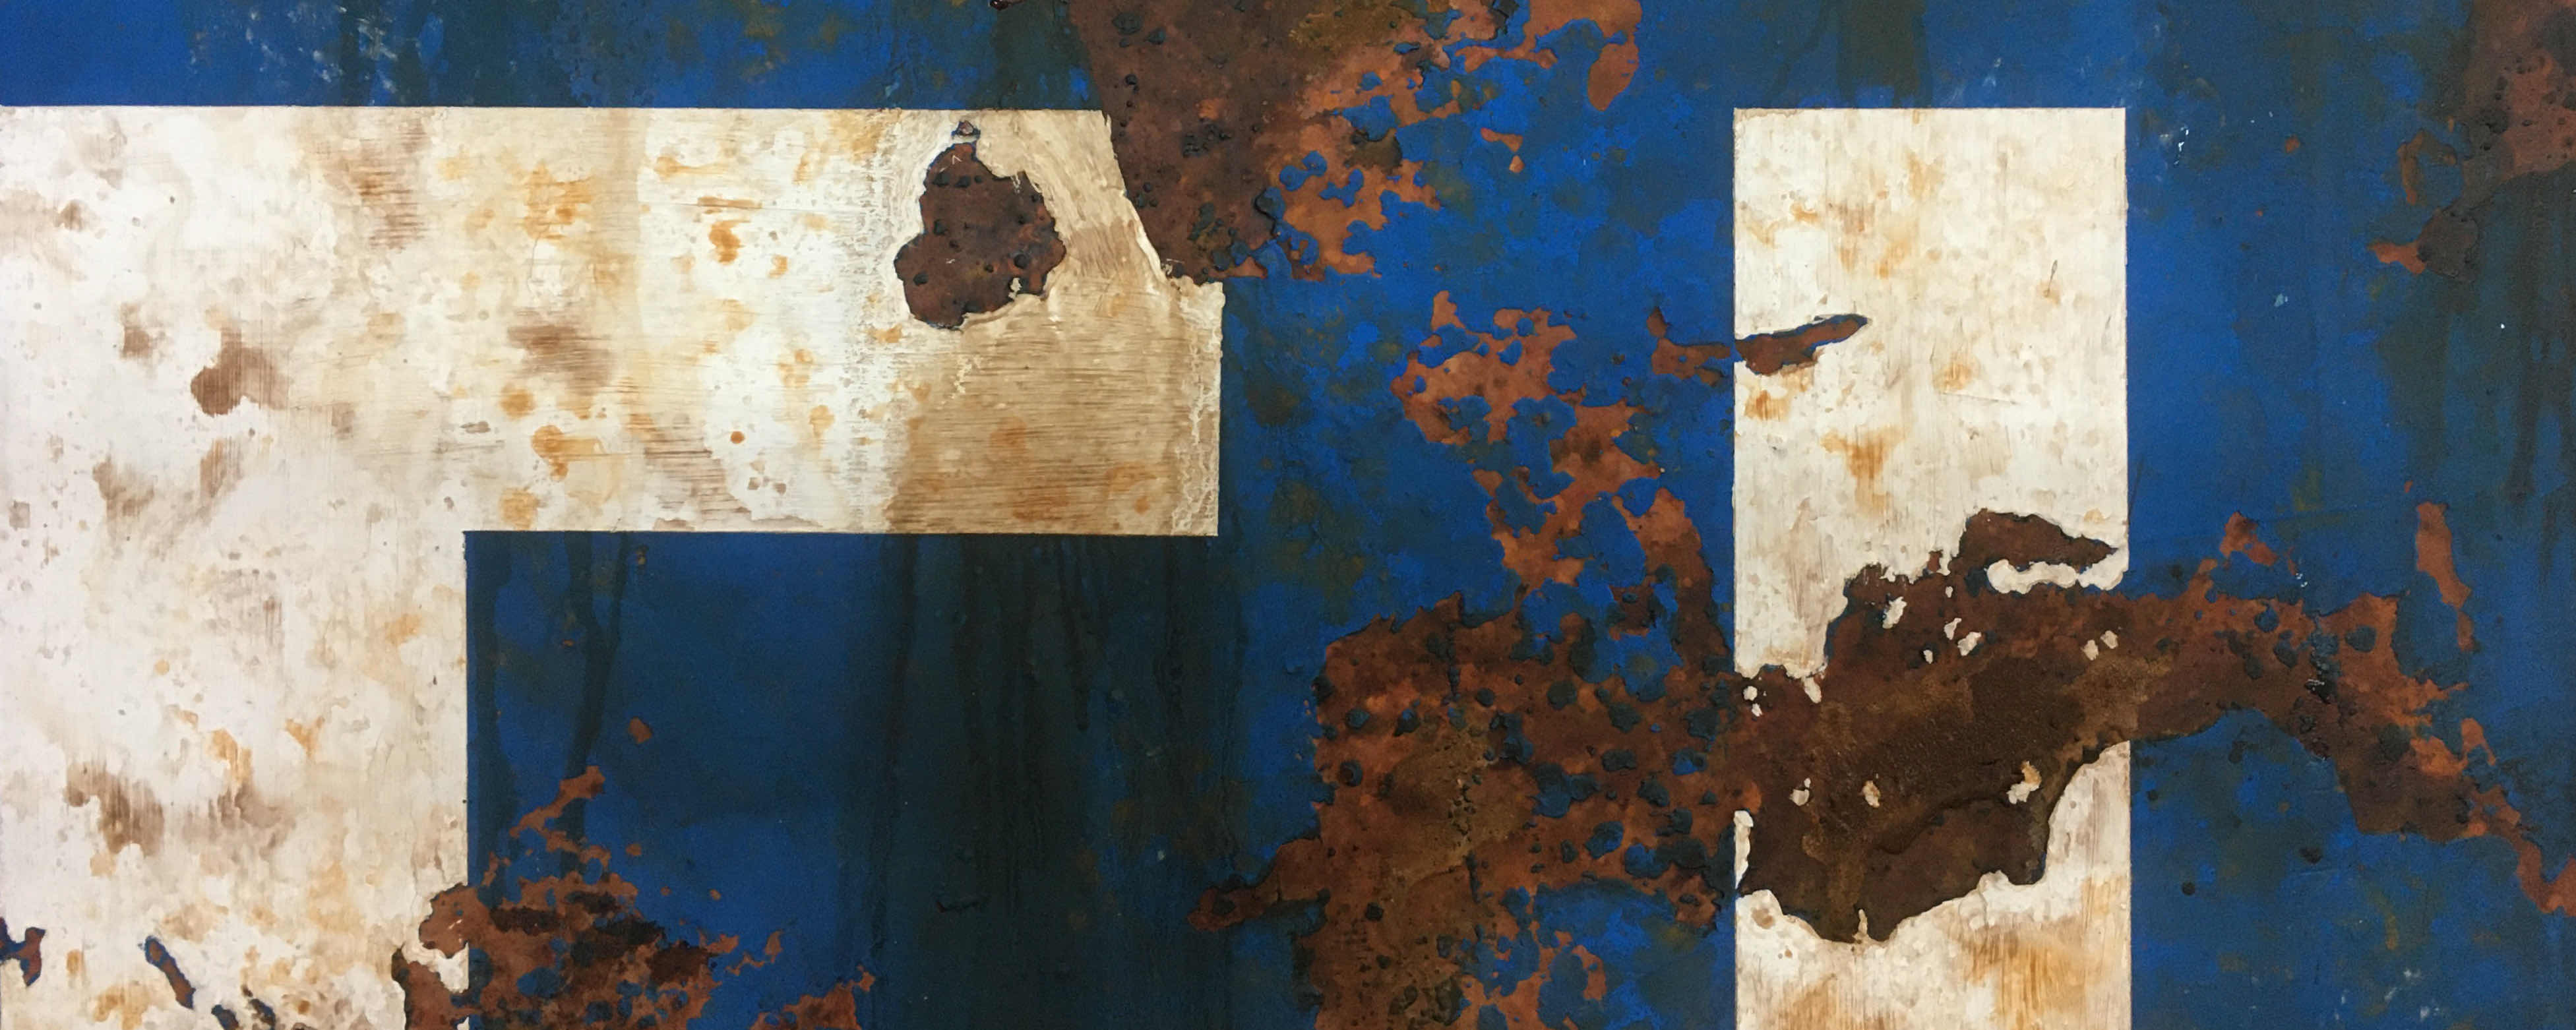 Rusty metal paint finishes